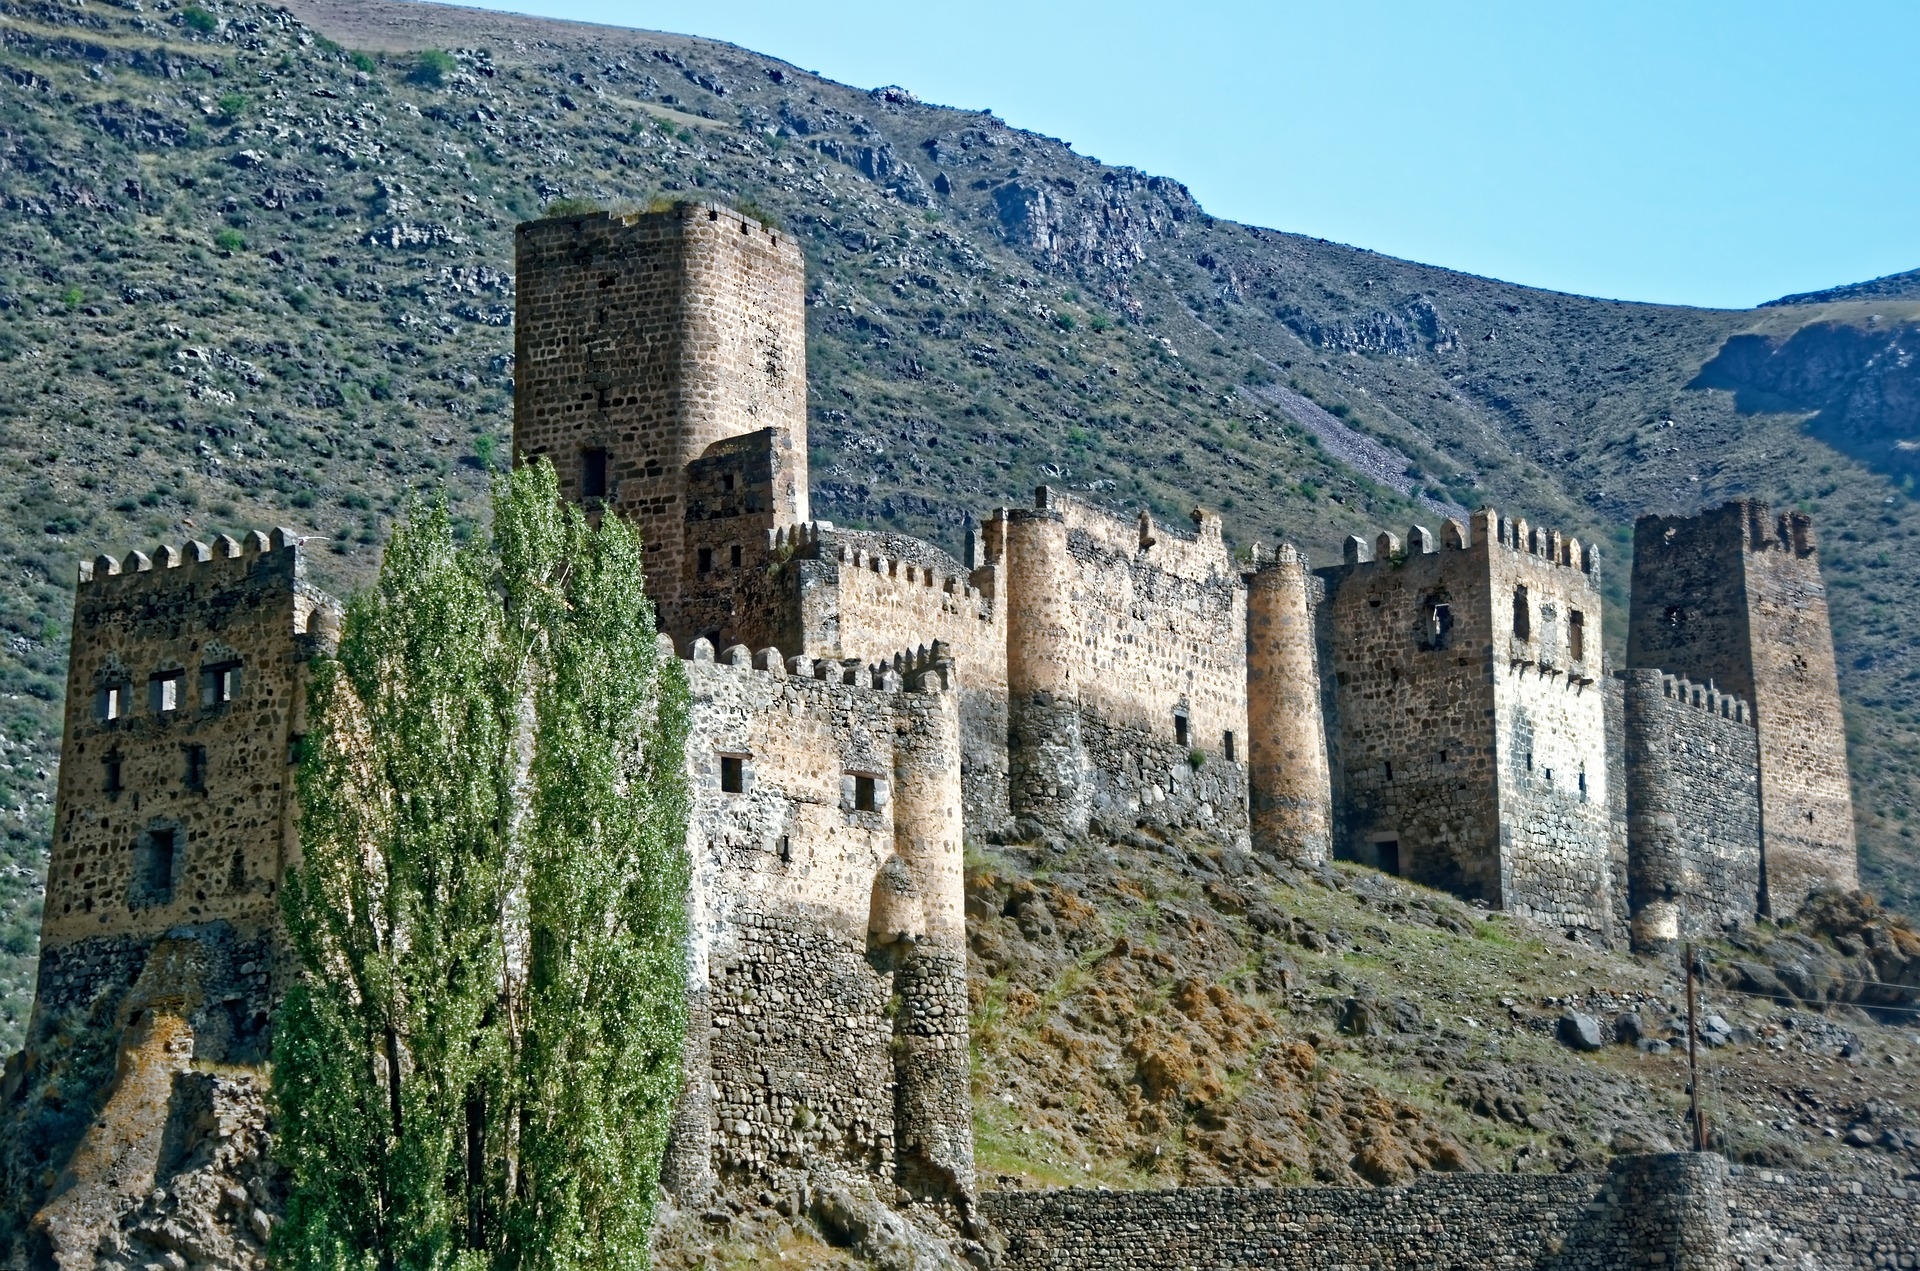 Khertvisi fortress castle, in the Meskheti region, is one of the oldest fortresses in Georgia and was functional throughout the Georgian feudal period.